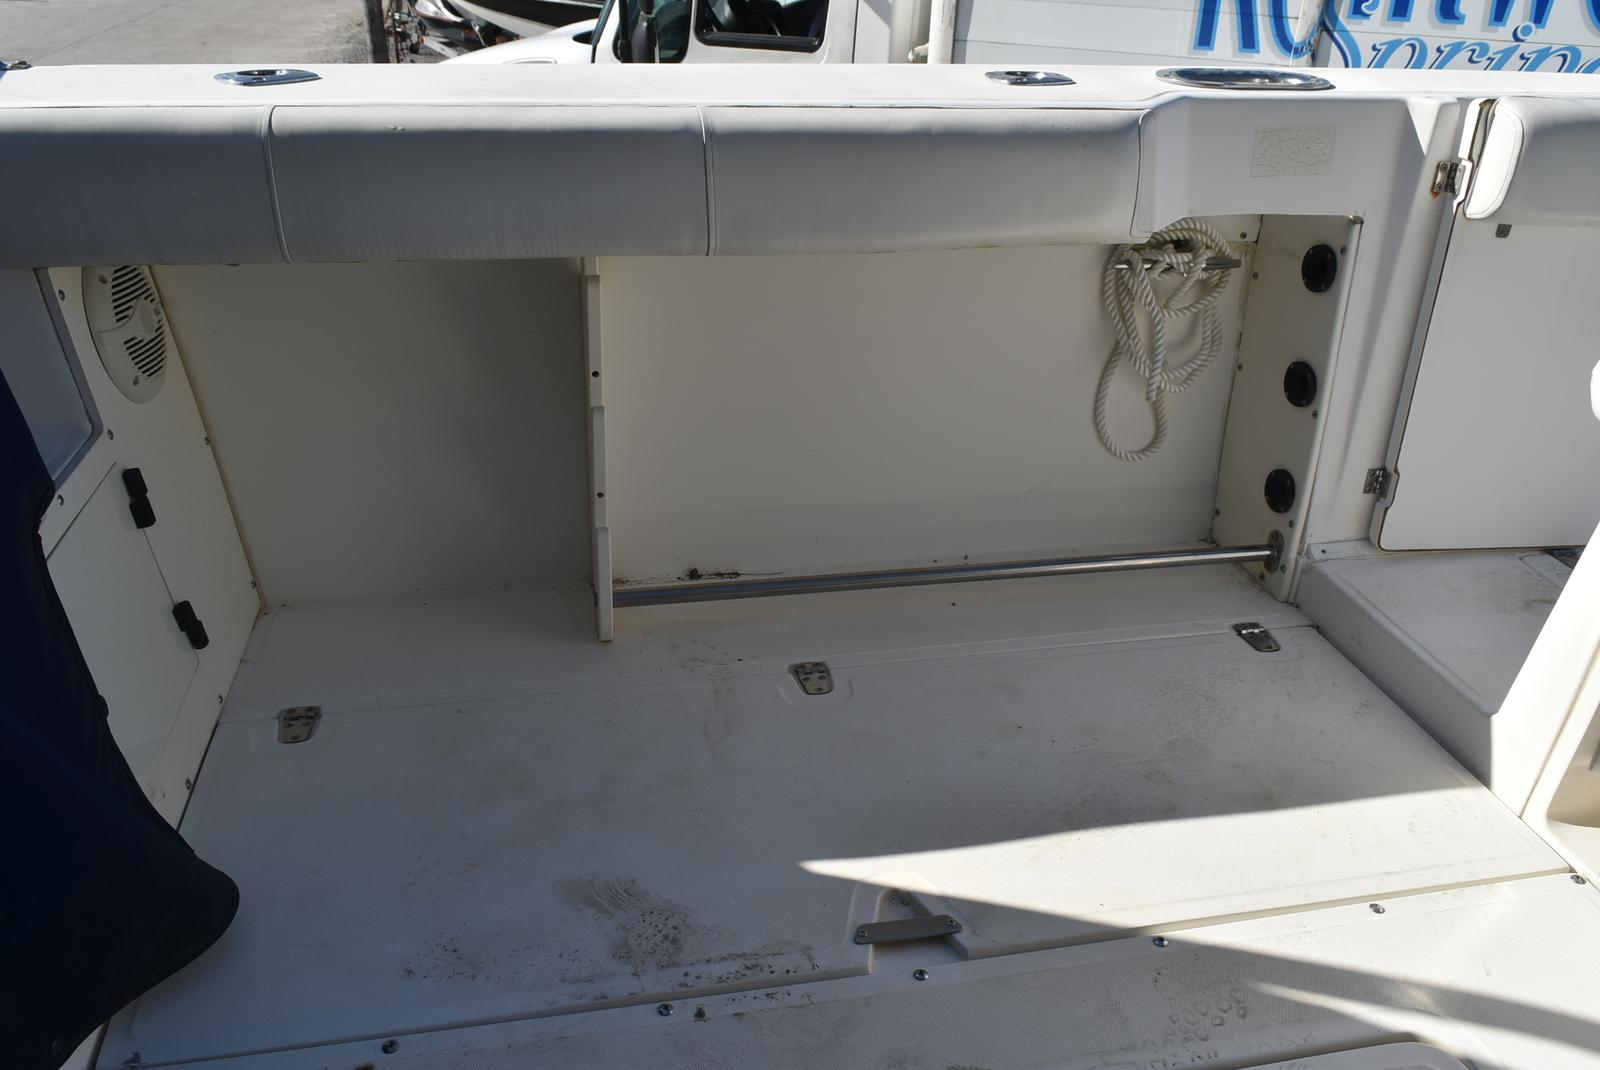 1999 Boston Whaler boat for sale, model of the boat is 285 Conquest & Image # 9 of 50